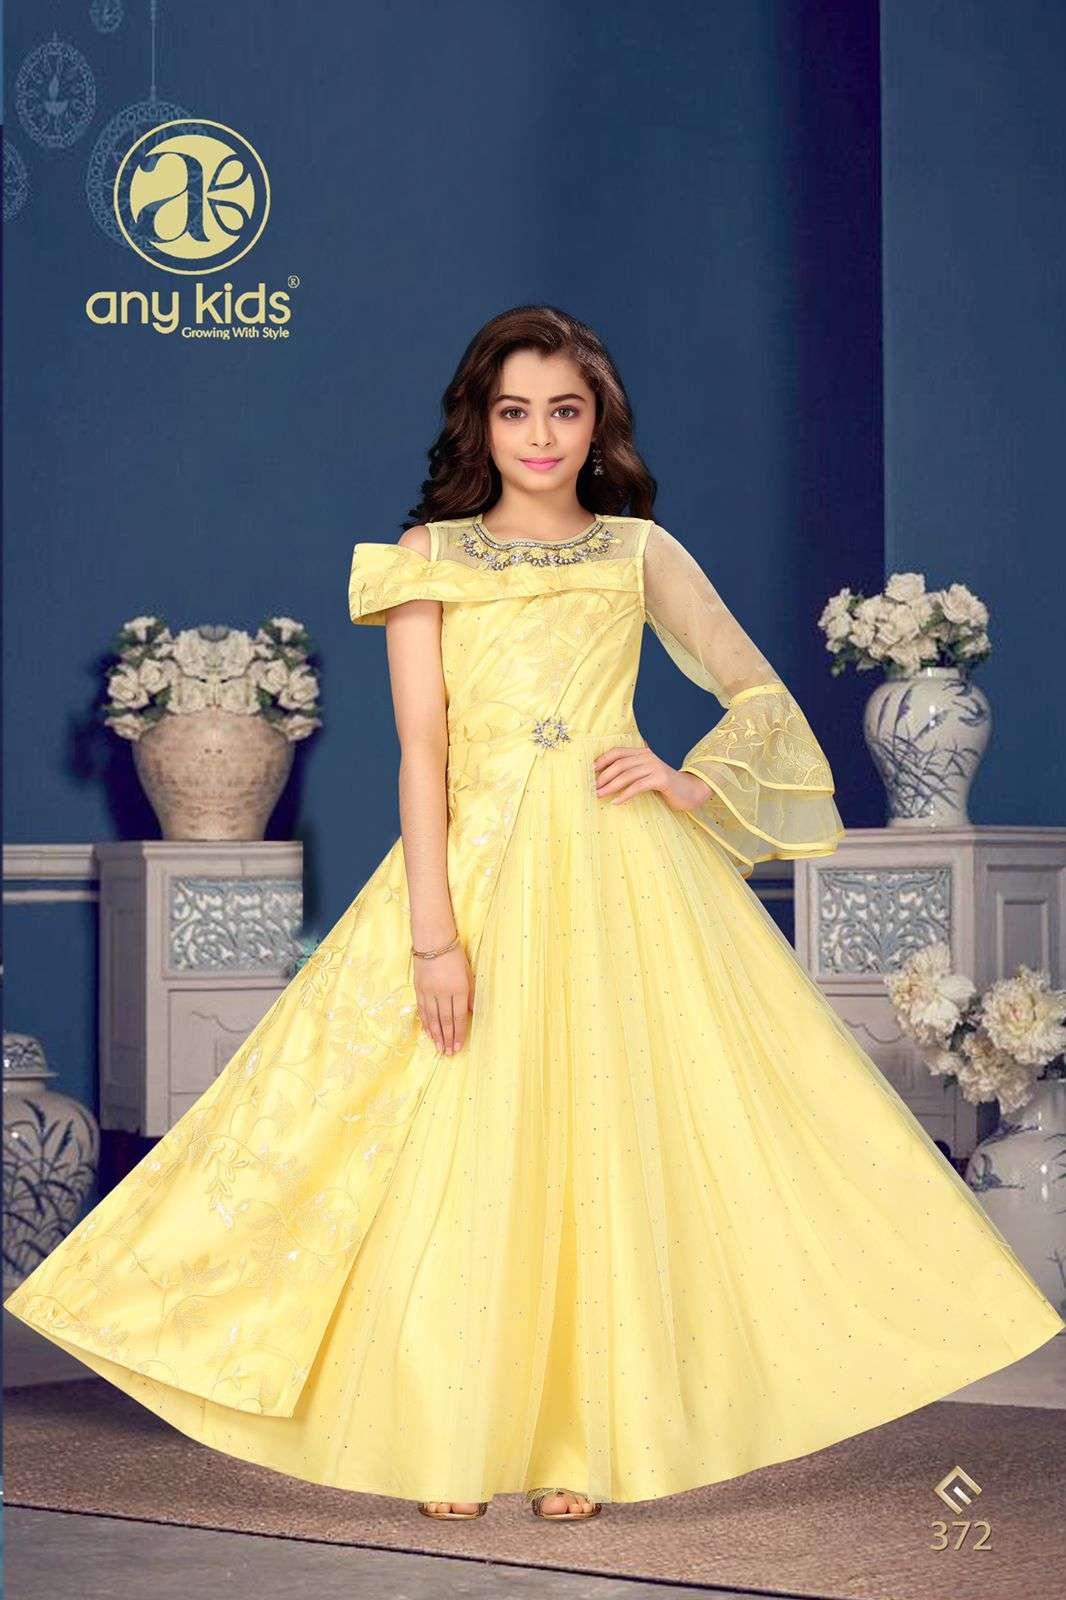 Anykids 370 to 391 Series Designer Readymade Kids Wear new Catalog In Wholesale Price